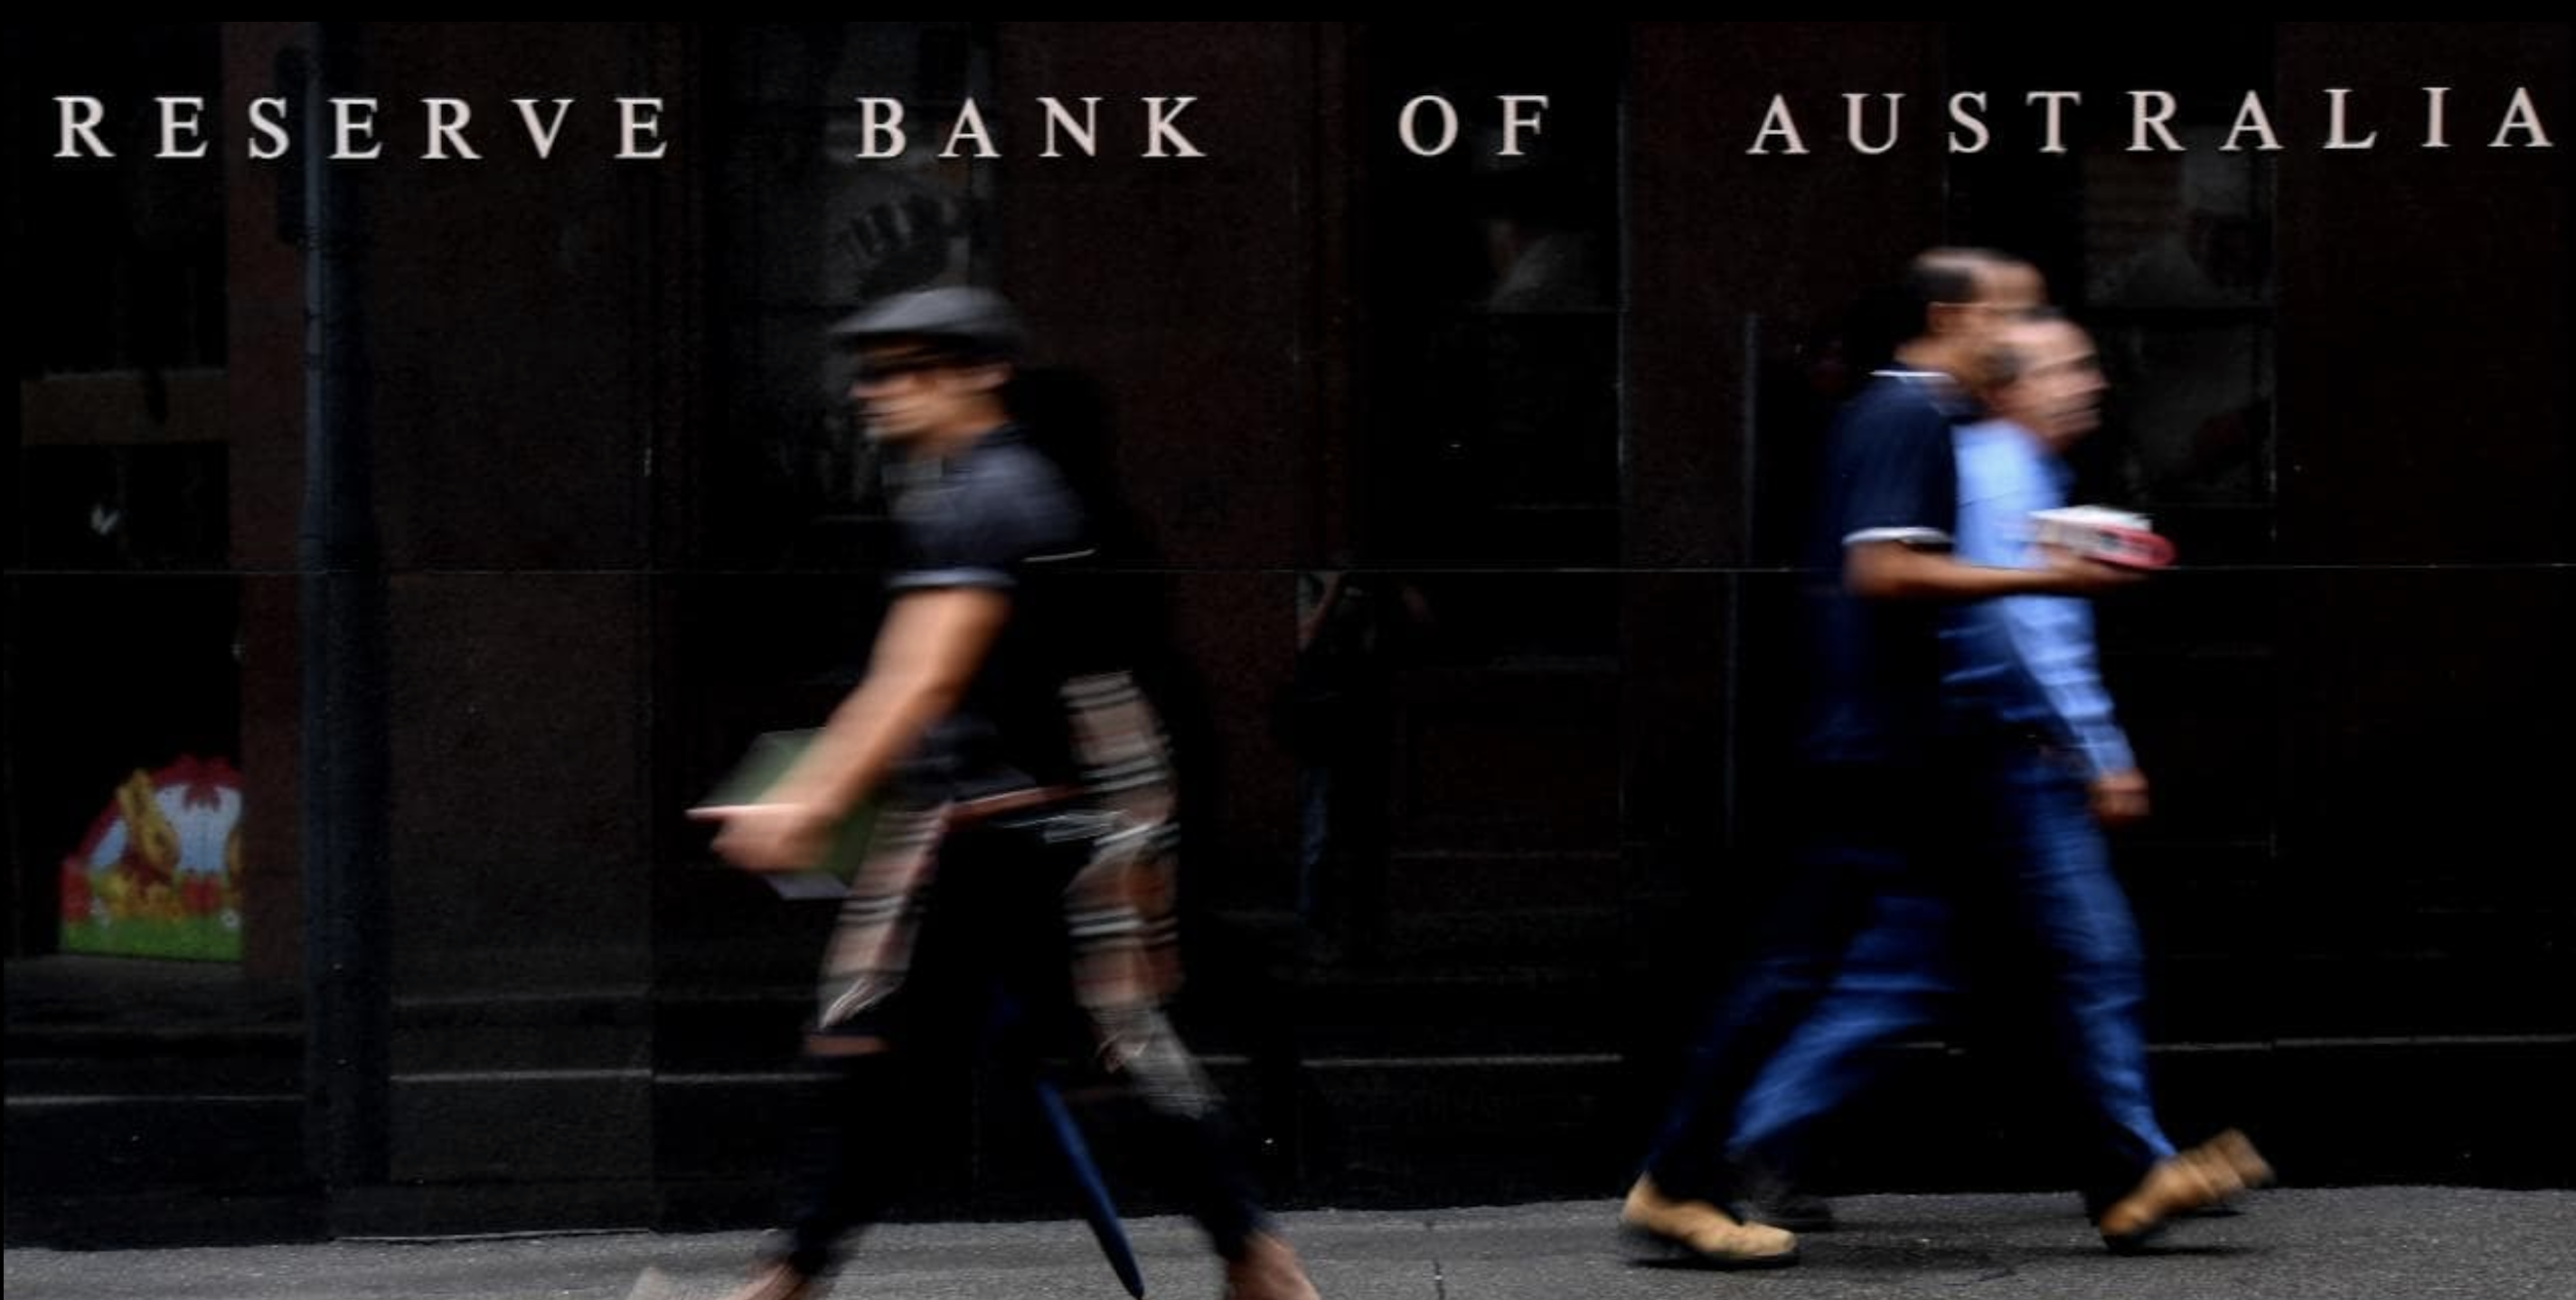 ▲ The RBA has cut the cash rate to all-time low of 1.25 per cent following the longest period of interest rate stability in Australian history.